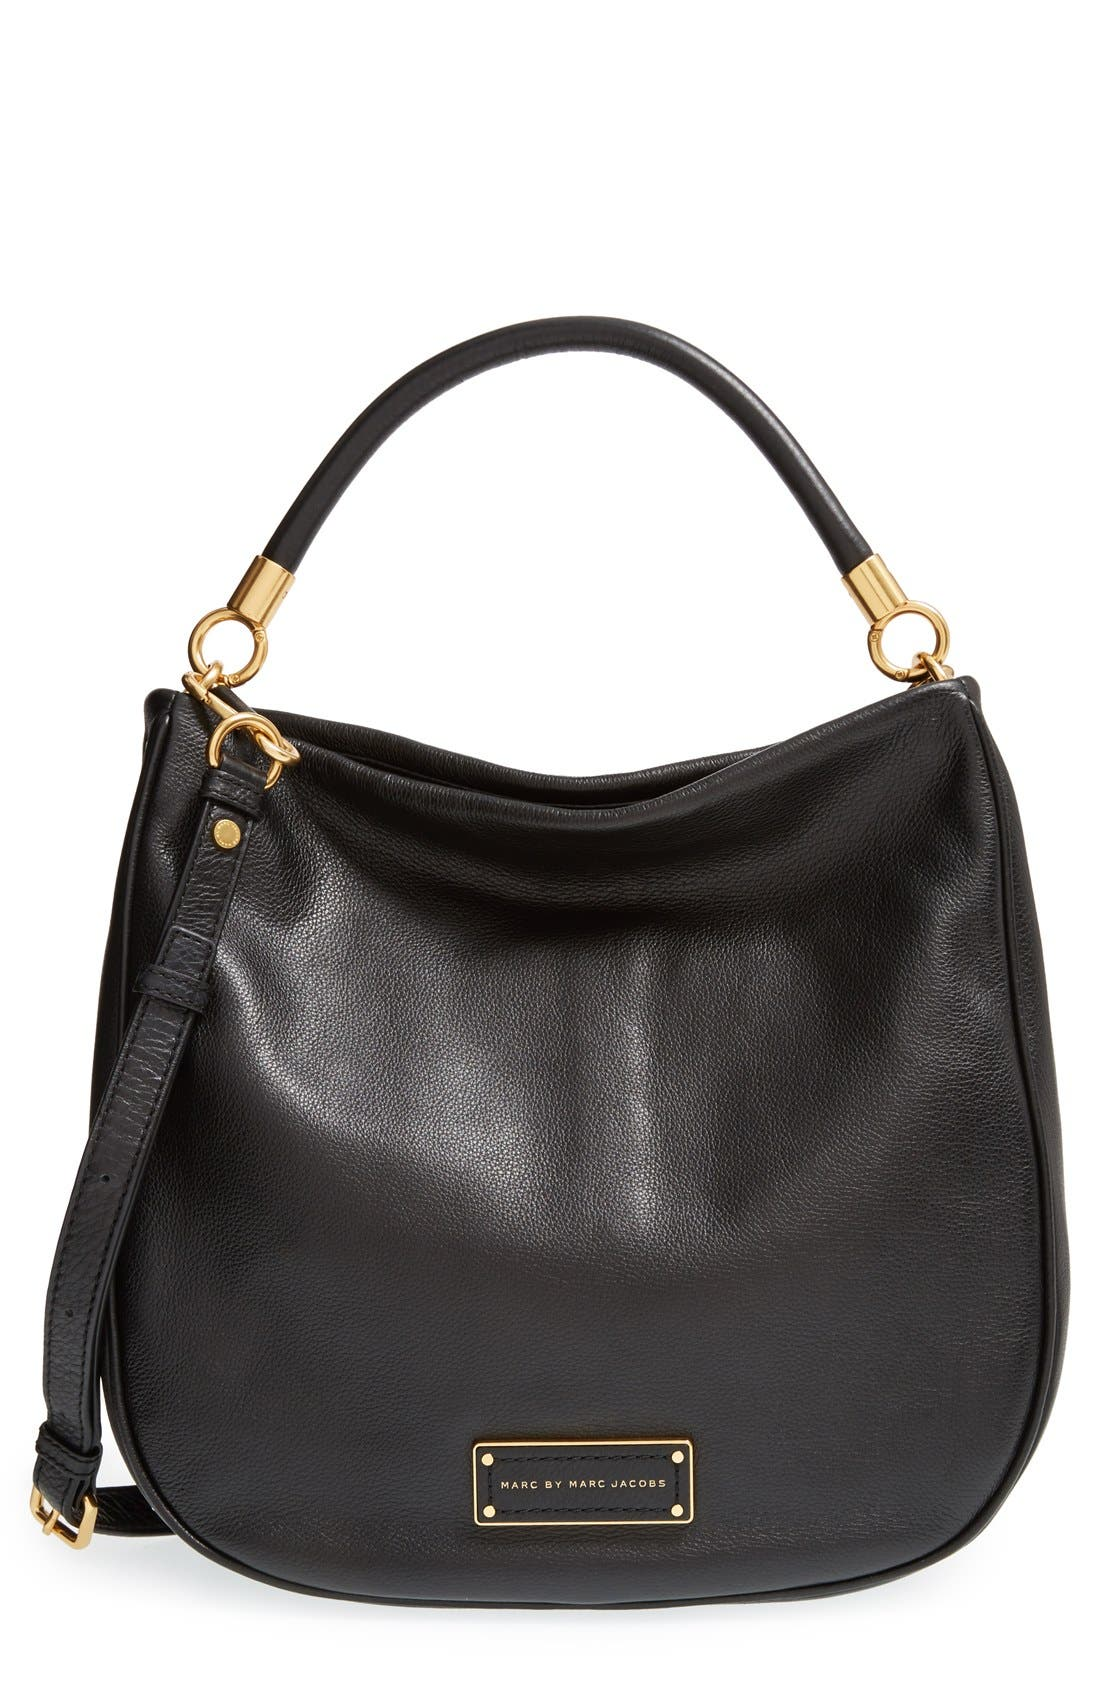 MARC BY MARC JACOBS 'Too Hot to Handle' Hobo,                             Main thumbnail 1, color,                             001